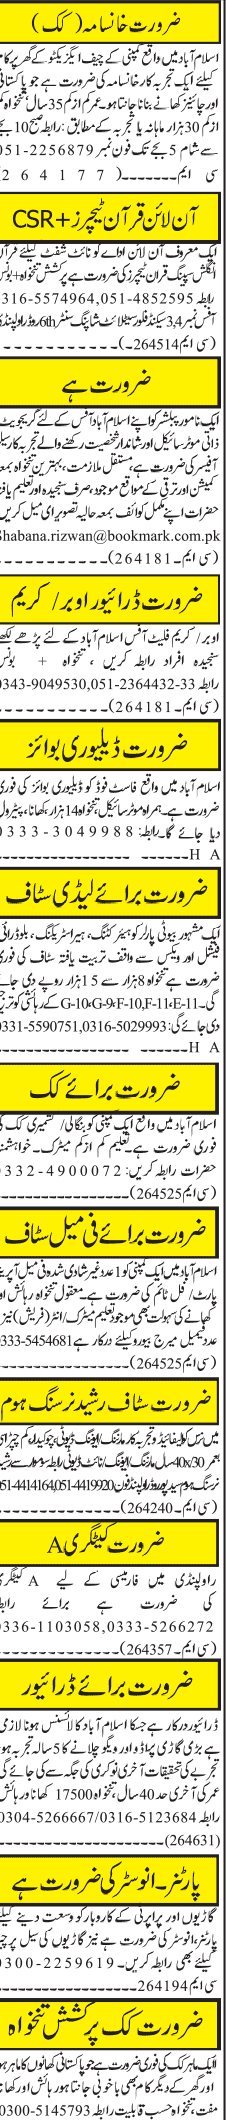 Cook, Teachers, LTV Drivers, Delivery Boys Wanted